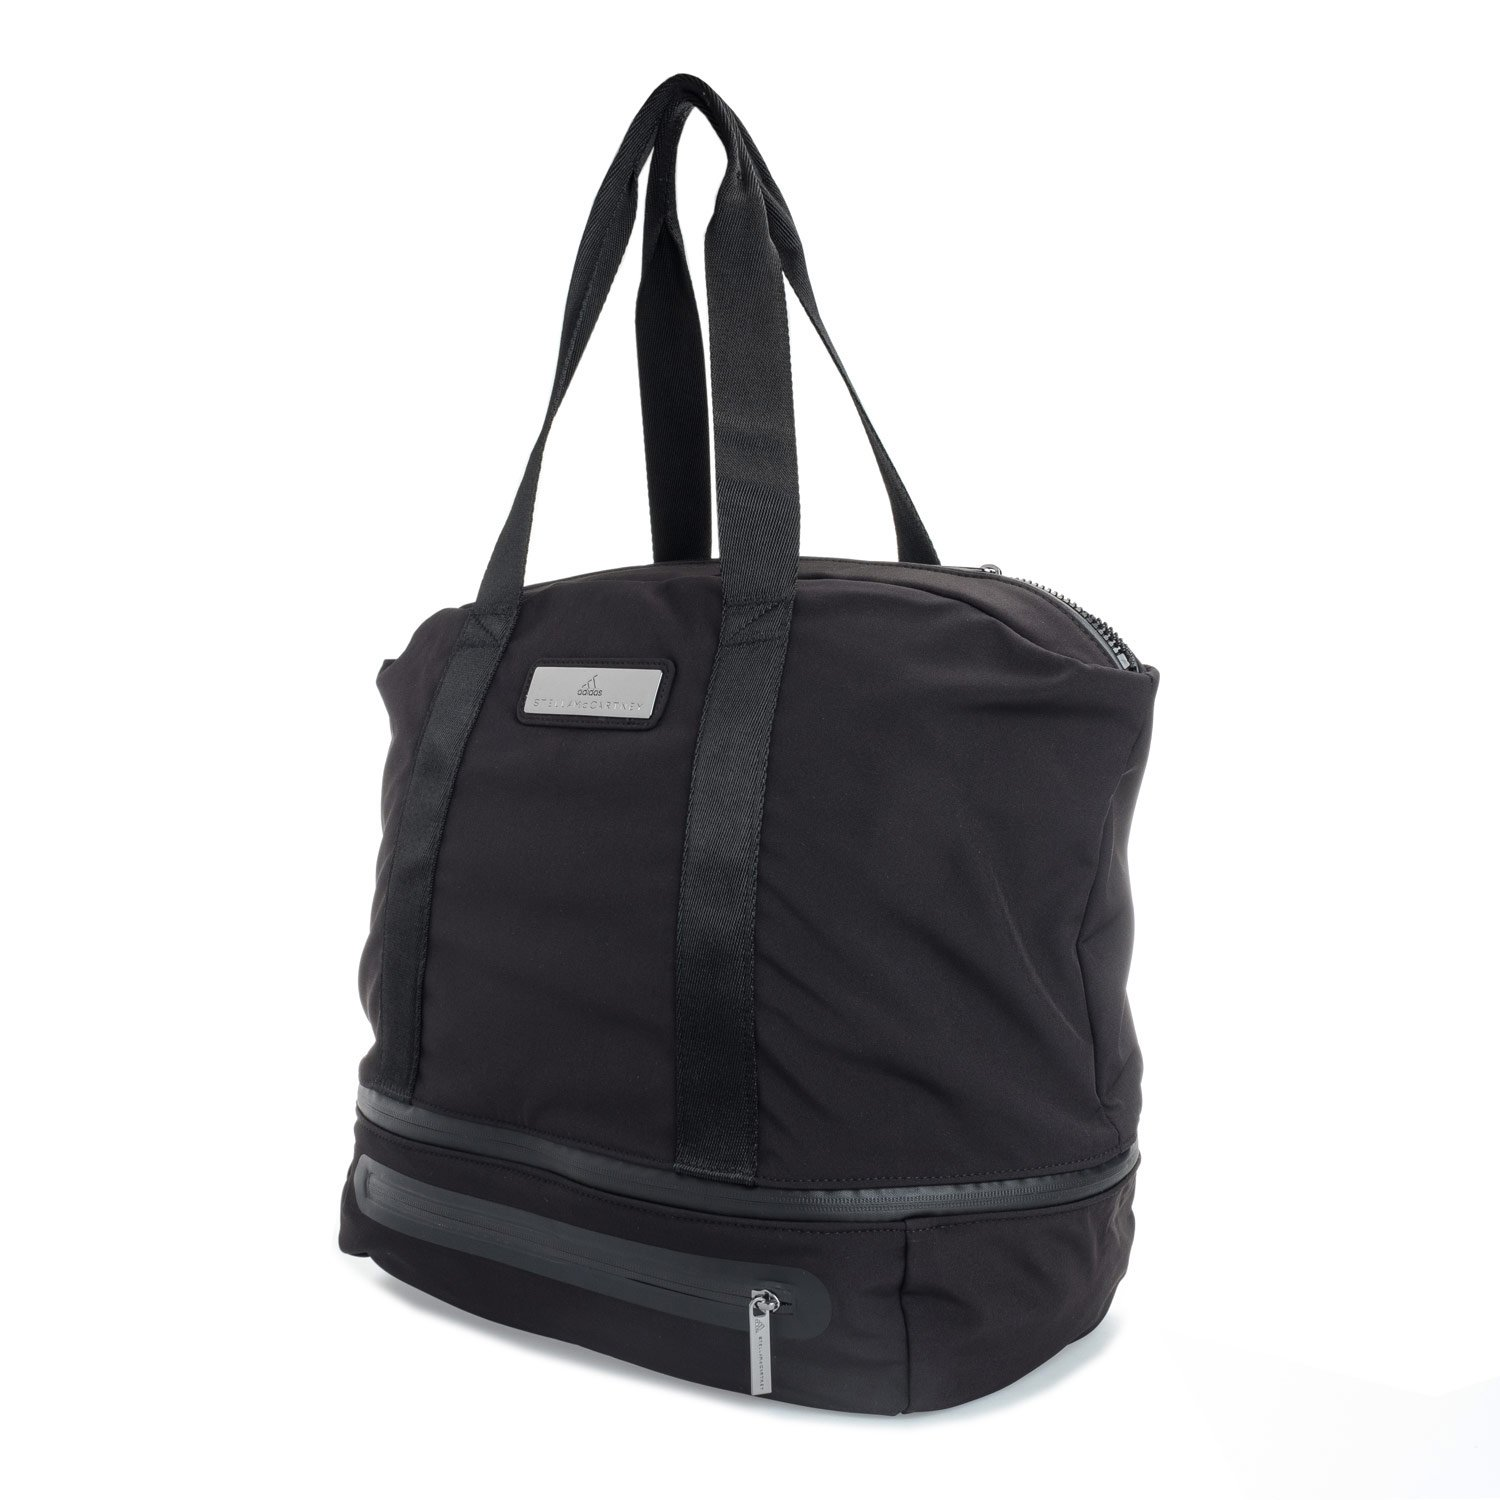 adidas Women s Iconic Bag L Bag - Black Negro Ngtste Icegry  adidas by Stella  McCartney  Amazon.co.uk  Sports   Outdoors a6a20b5c4c0f3